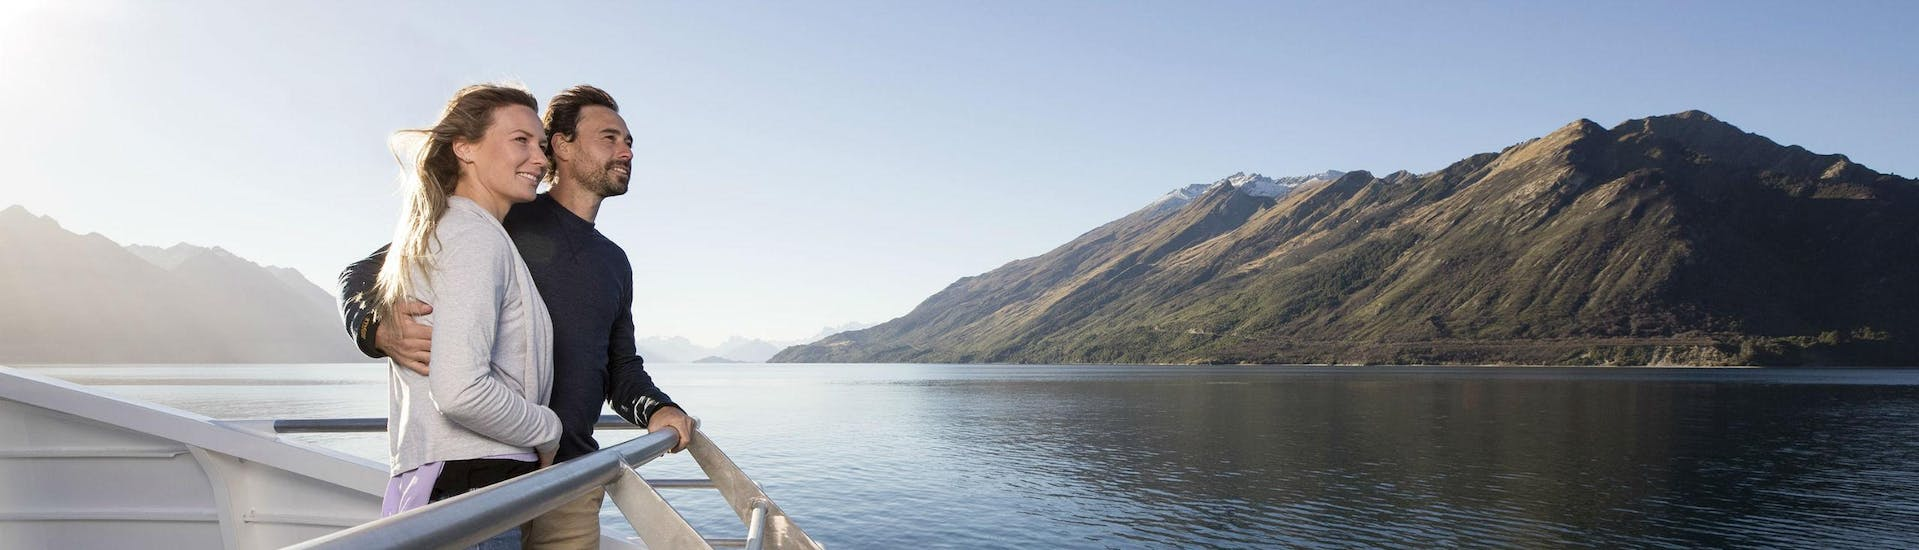 A couple is enjoying the view from the catamaran's viewing deck during the Spirit of Queenstown Cruise on Lake Wakatipu organised by Southern Discoveries.